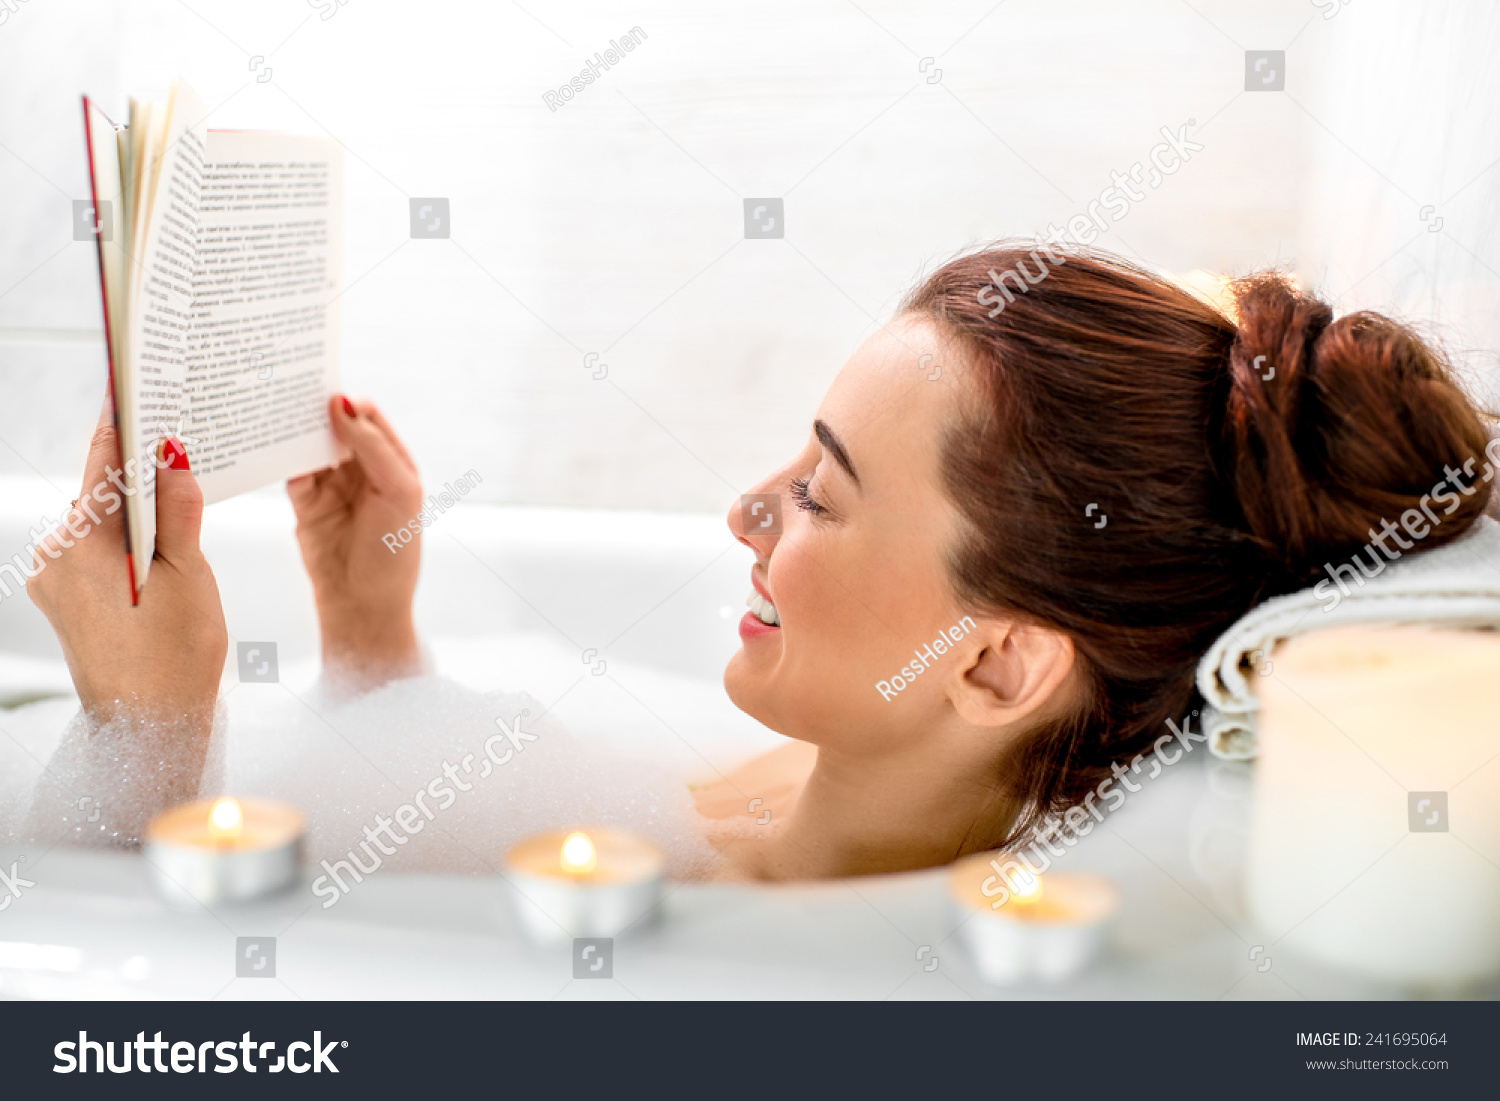 Young Woman Reading Book While Lying Stock Photo (Edit Now ...